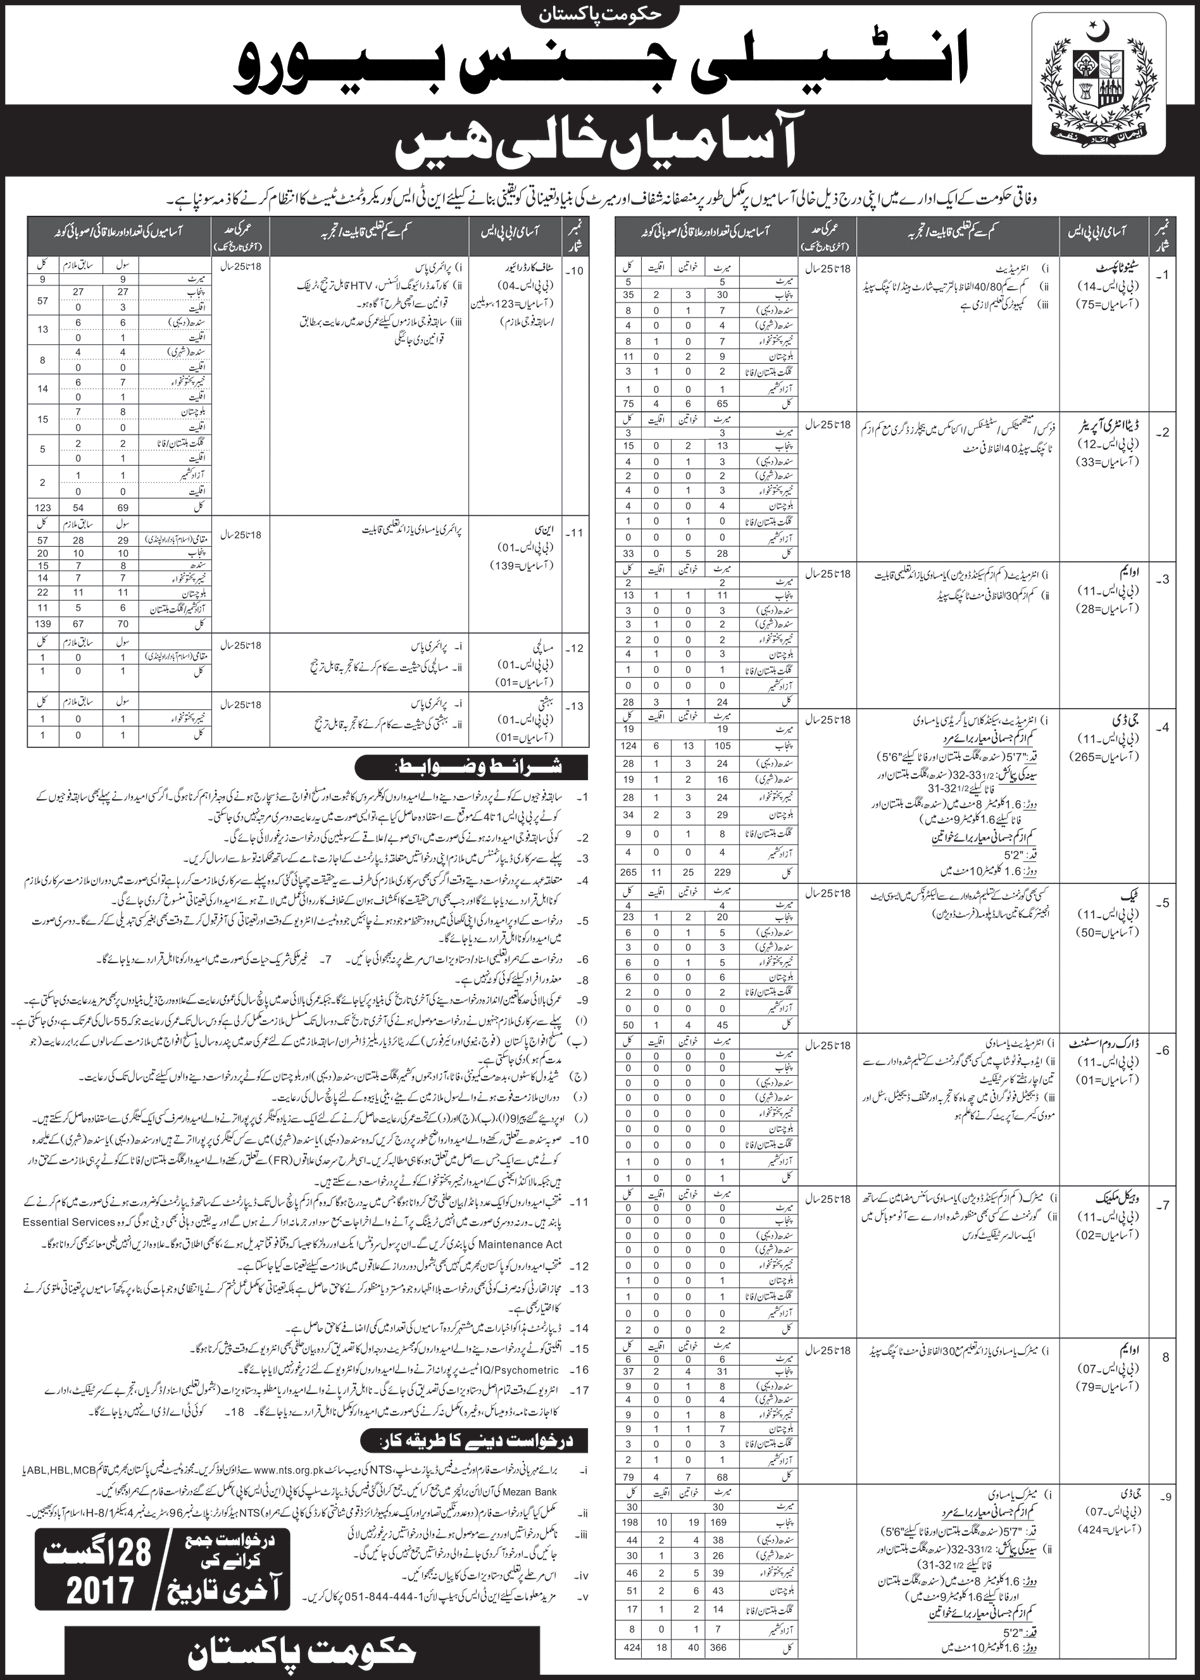 Intelligence Bureau Pakistan jobs 2017